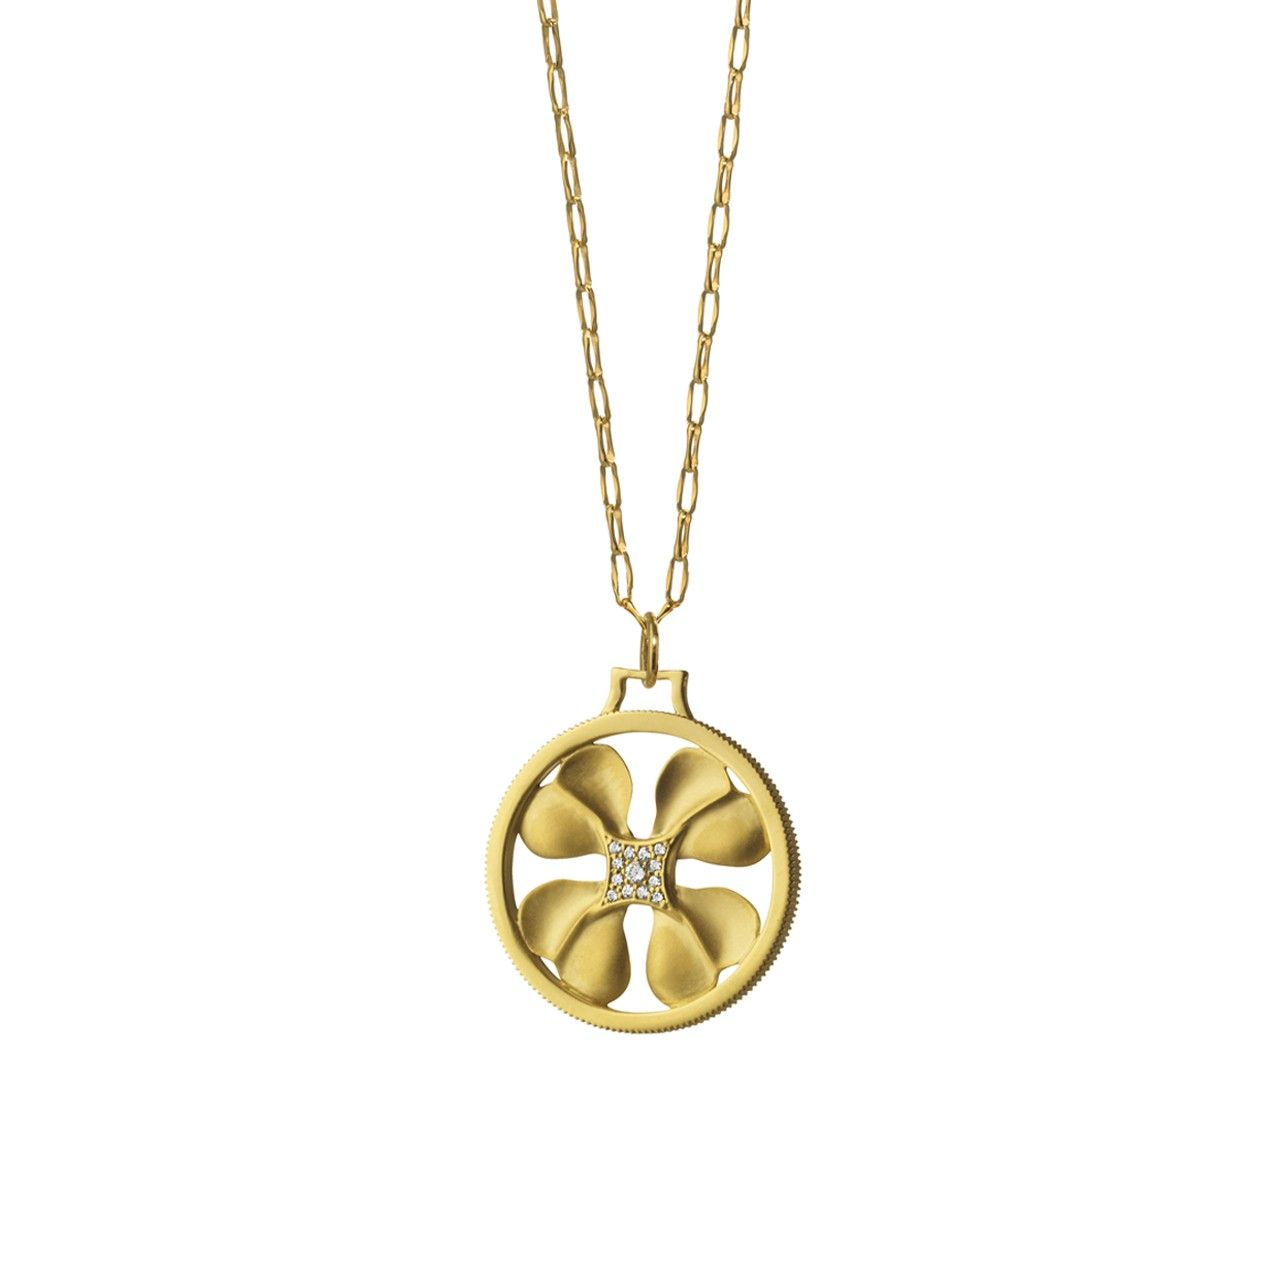 herseysilversmiths necklace lucky or leaf hersey original clover four by product gold silver